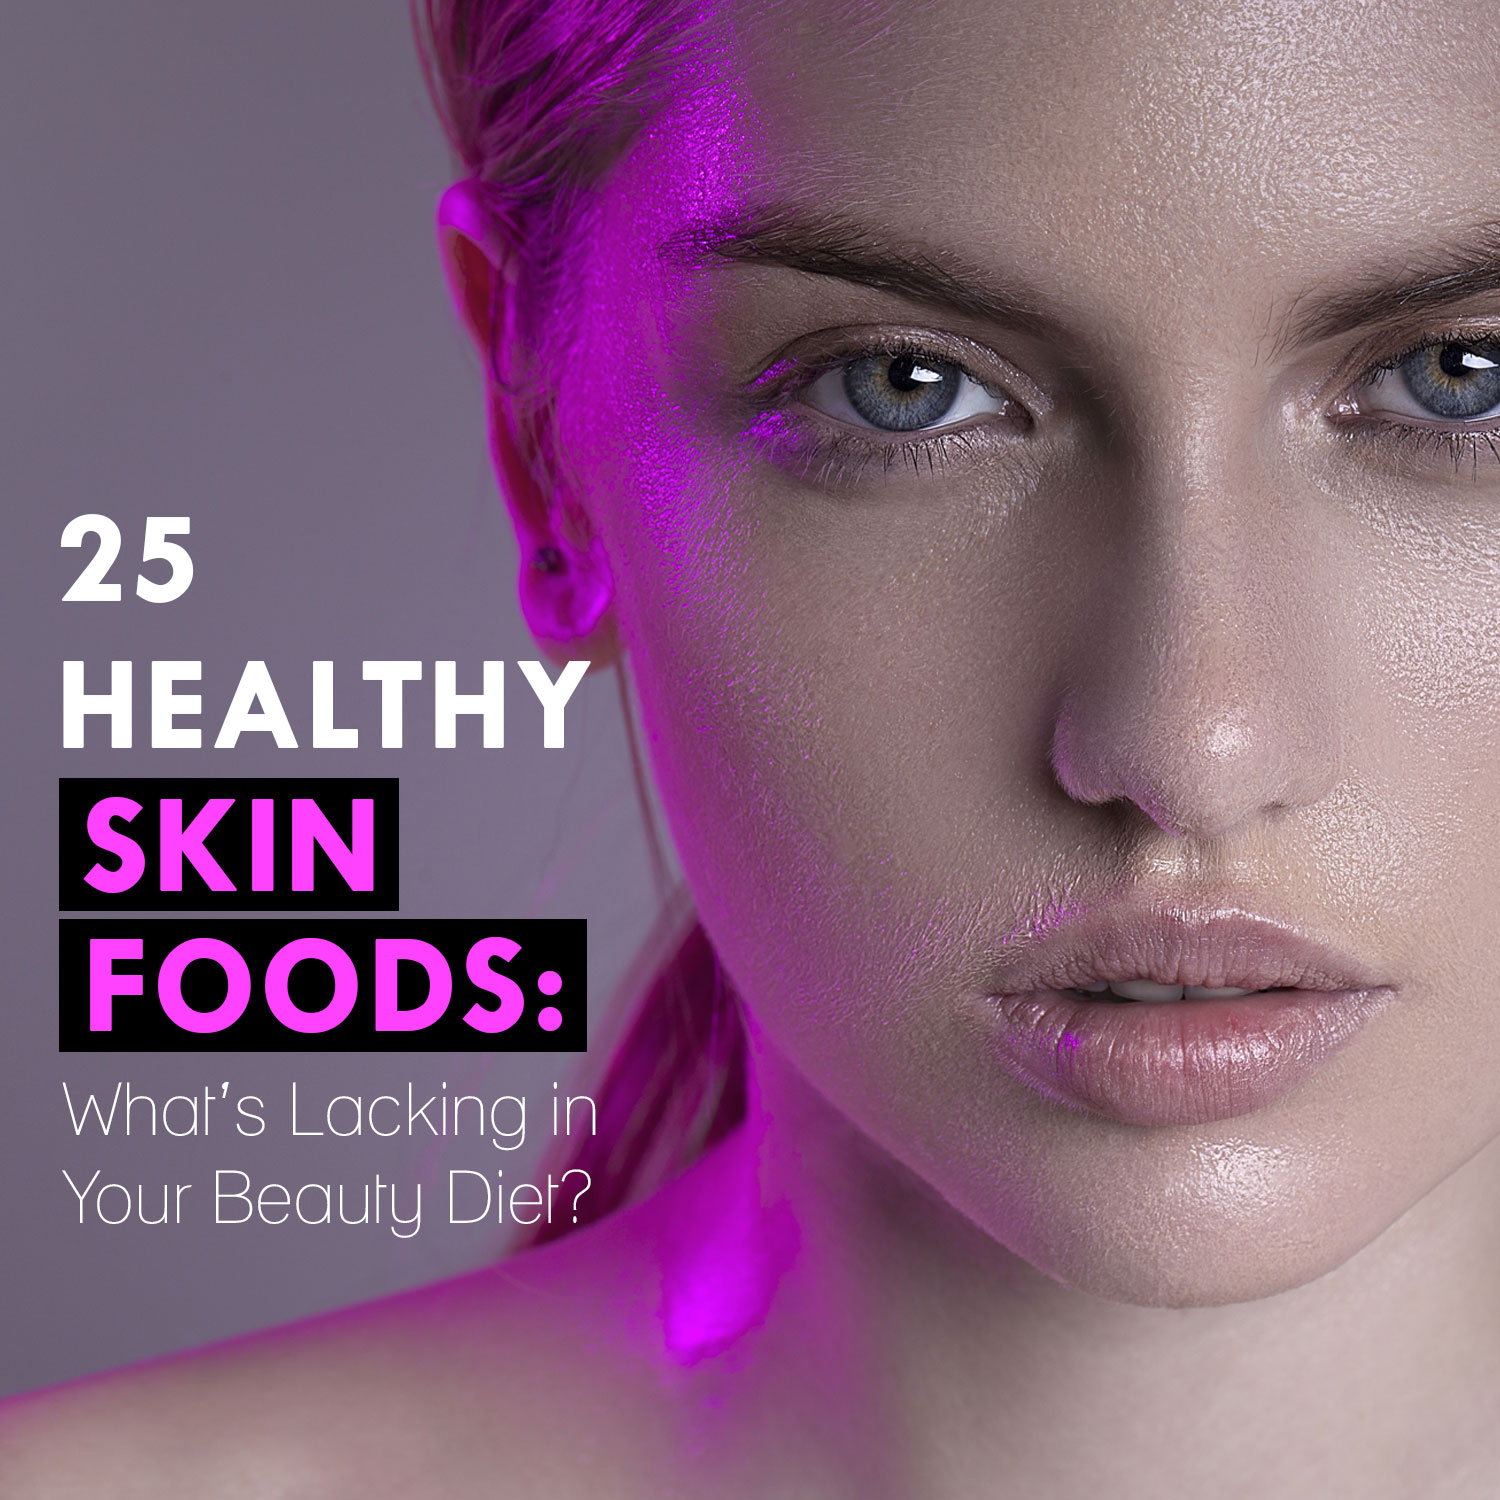 25 Healthy Skin Foods: What's Lacking in Your Beauty Diet?